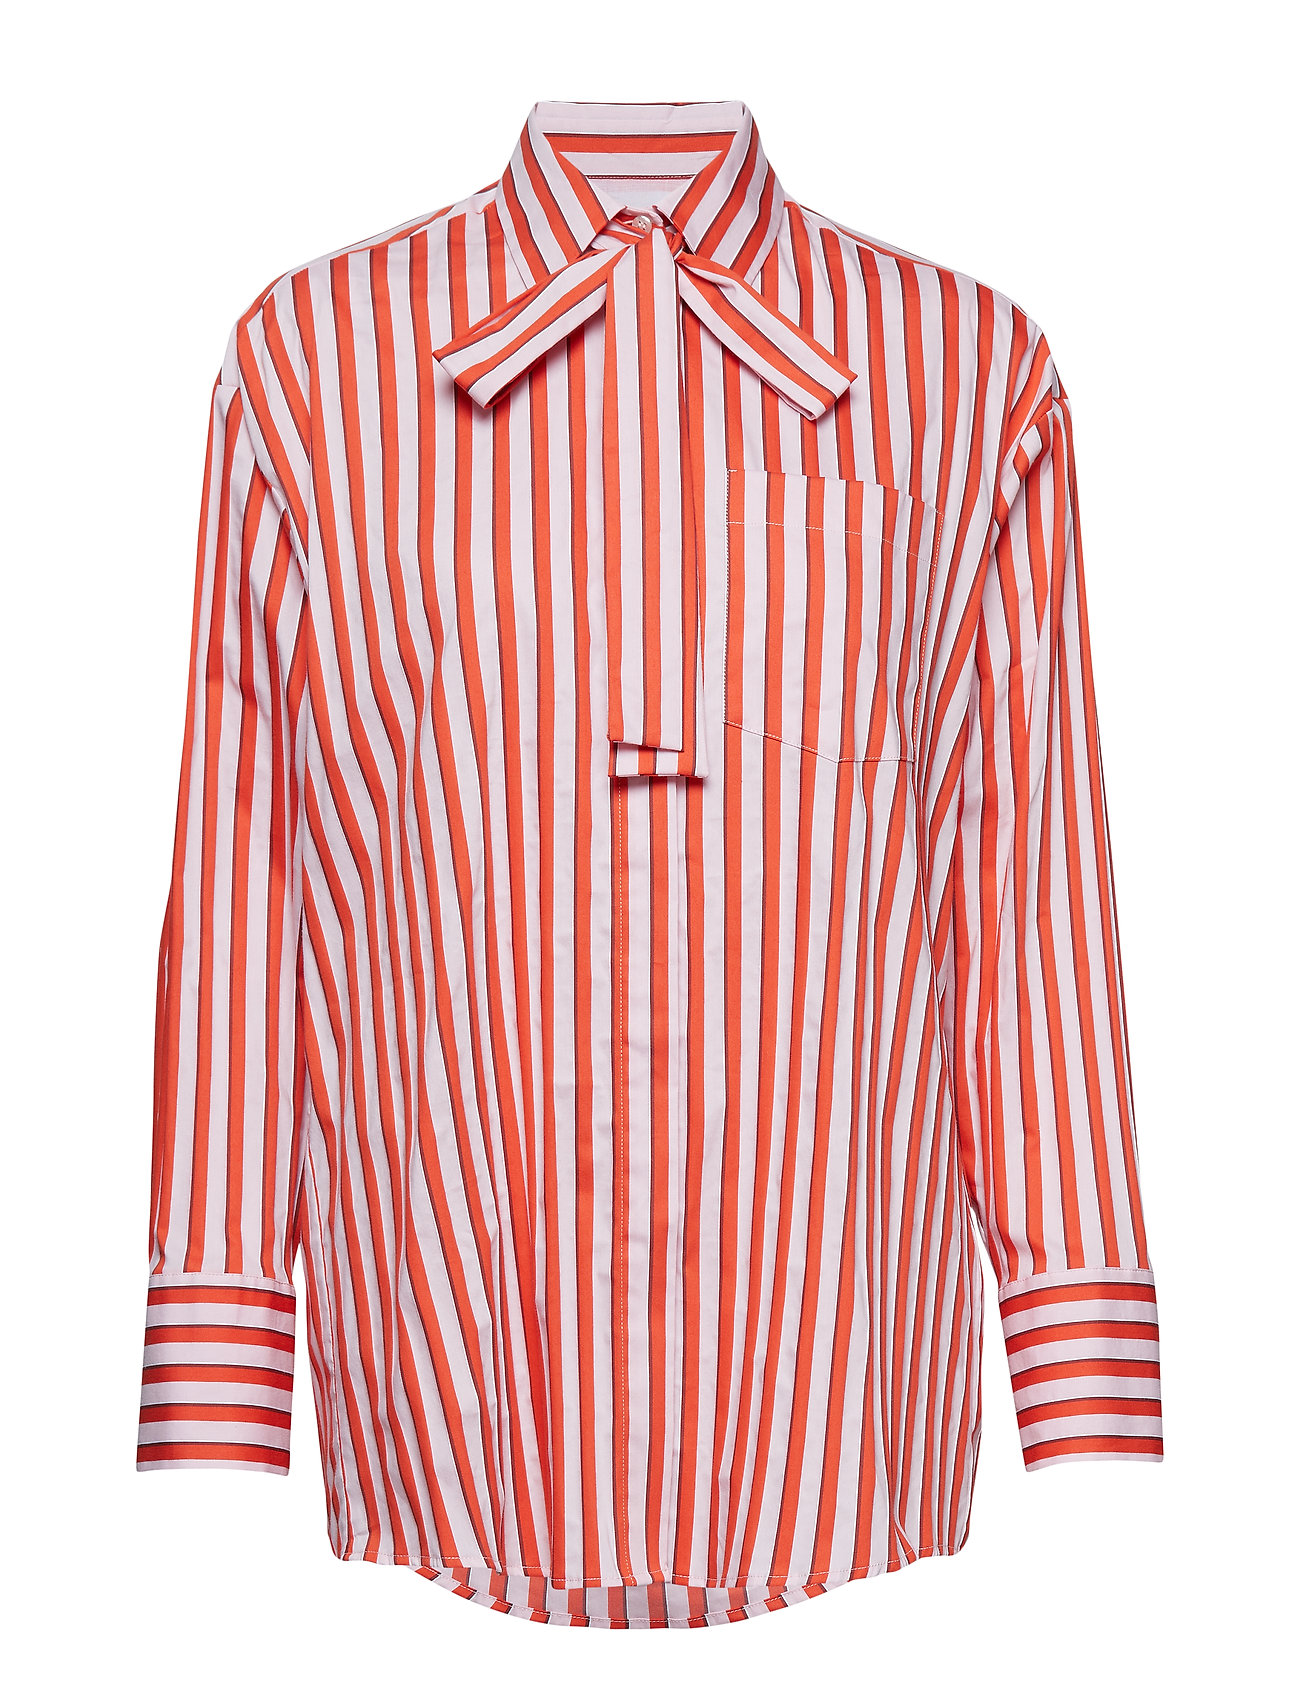 MSGM SHIRT - MULTI COULORED